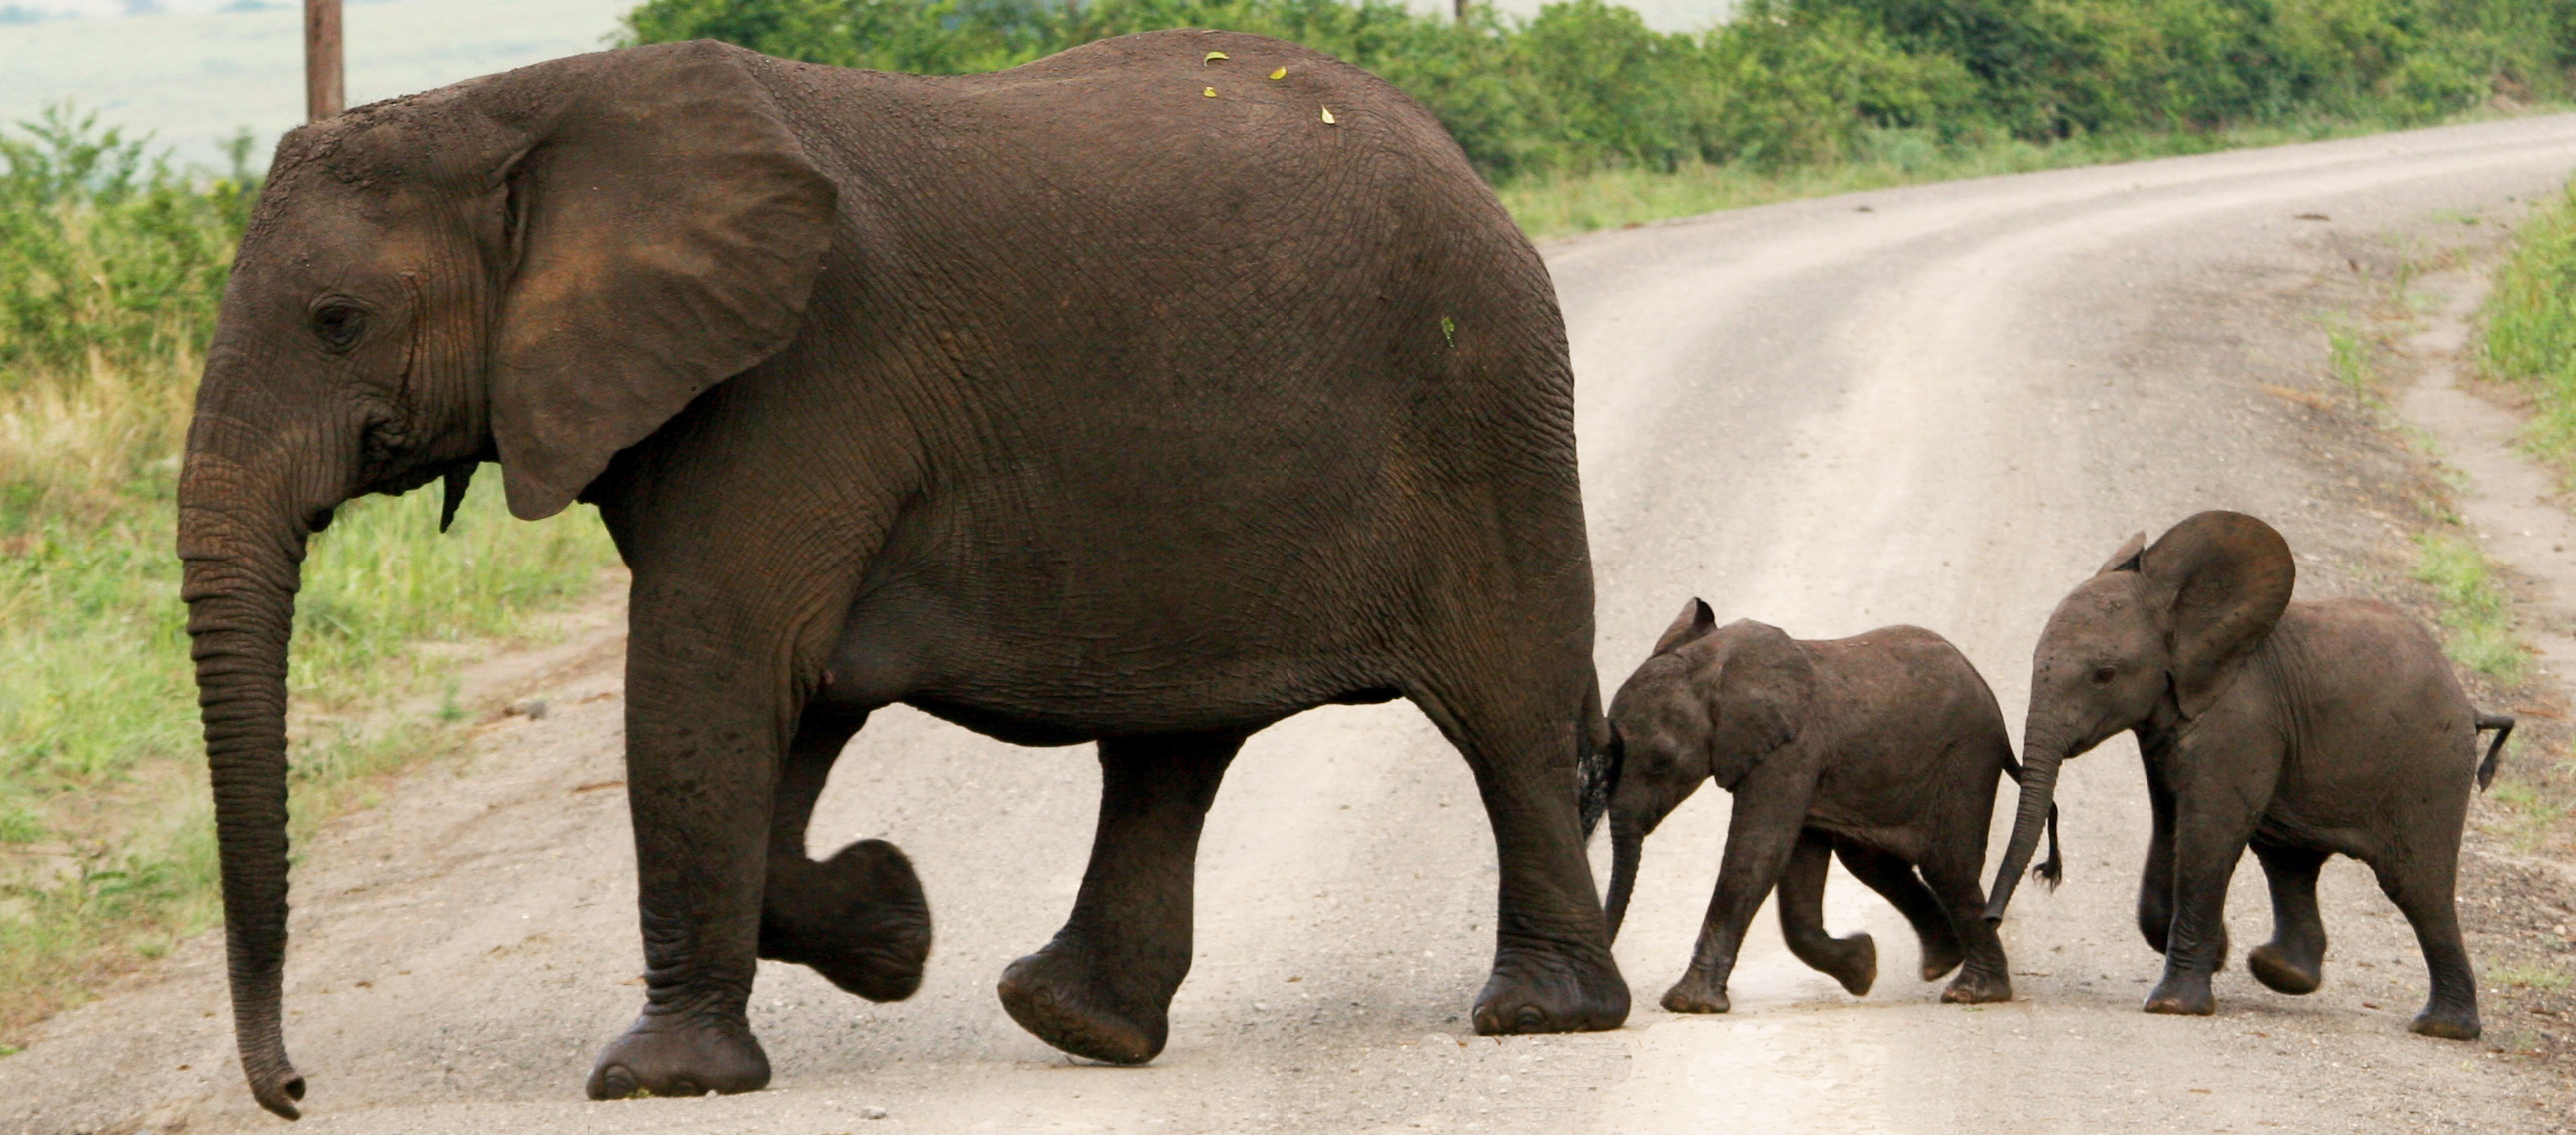 A female elephant and two calves use the buddy system to cross a Ugandan road. Photo: Global Adrenaline